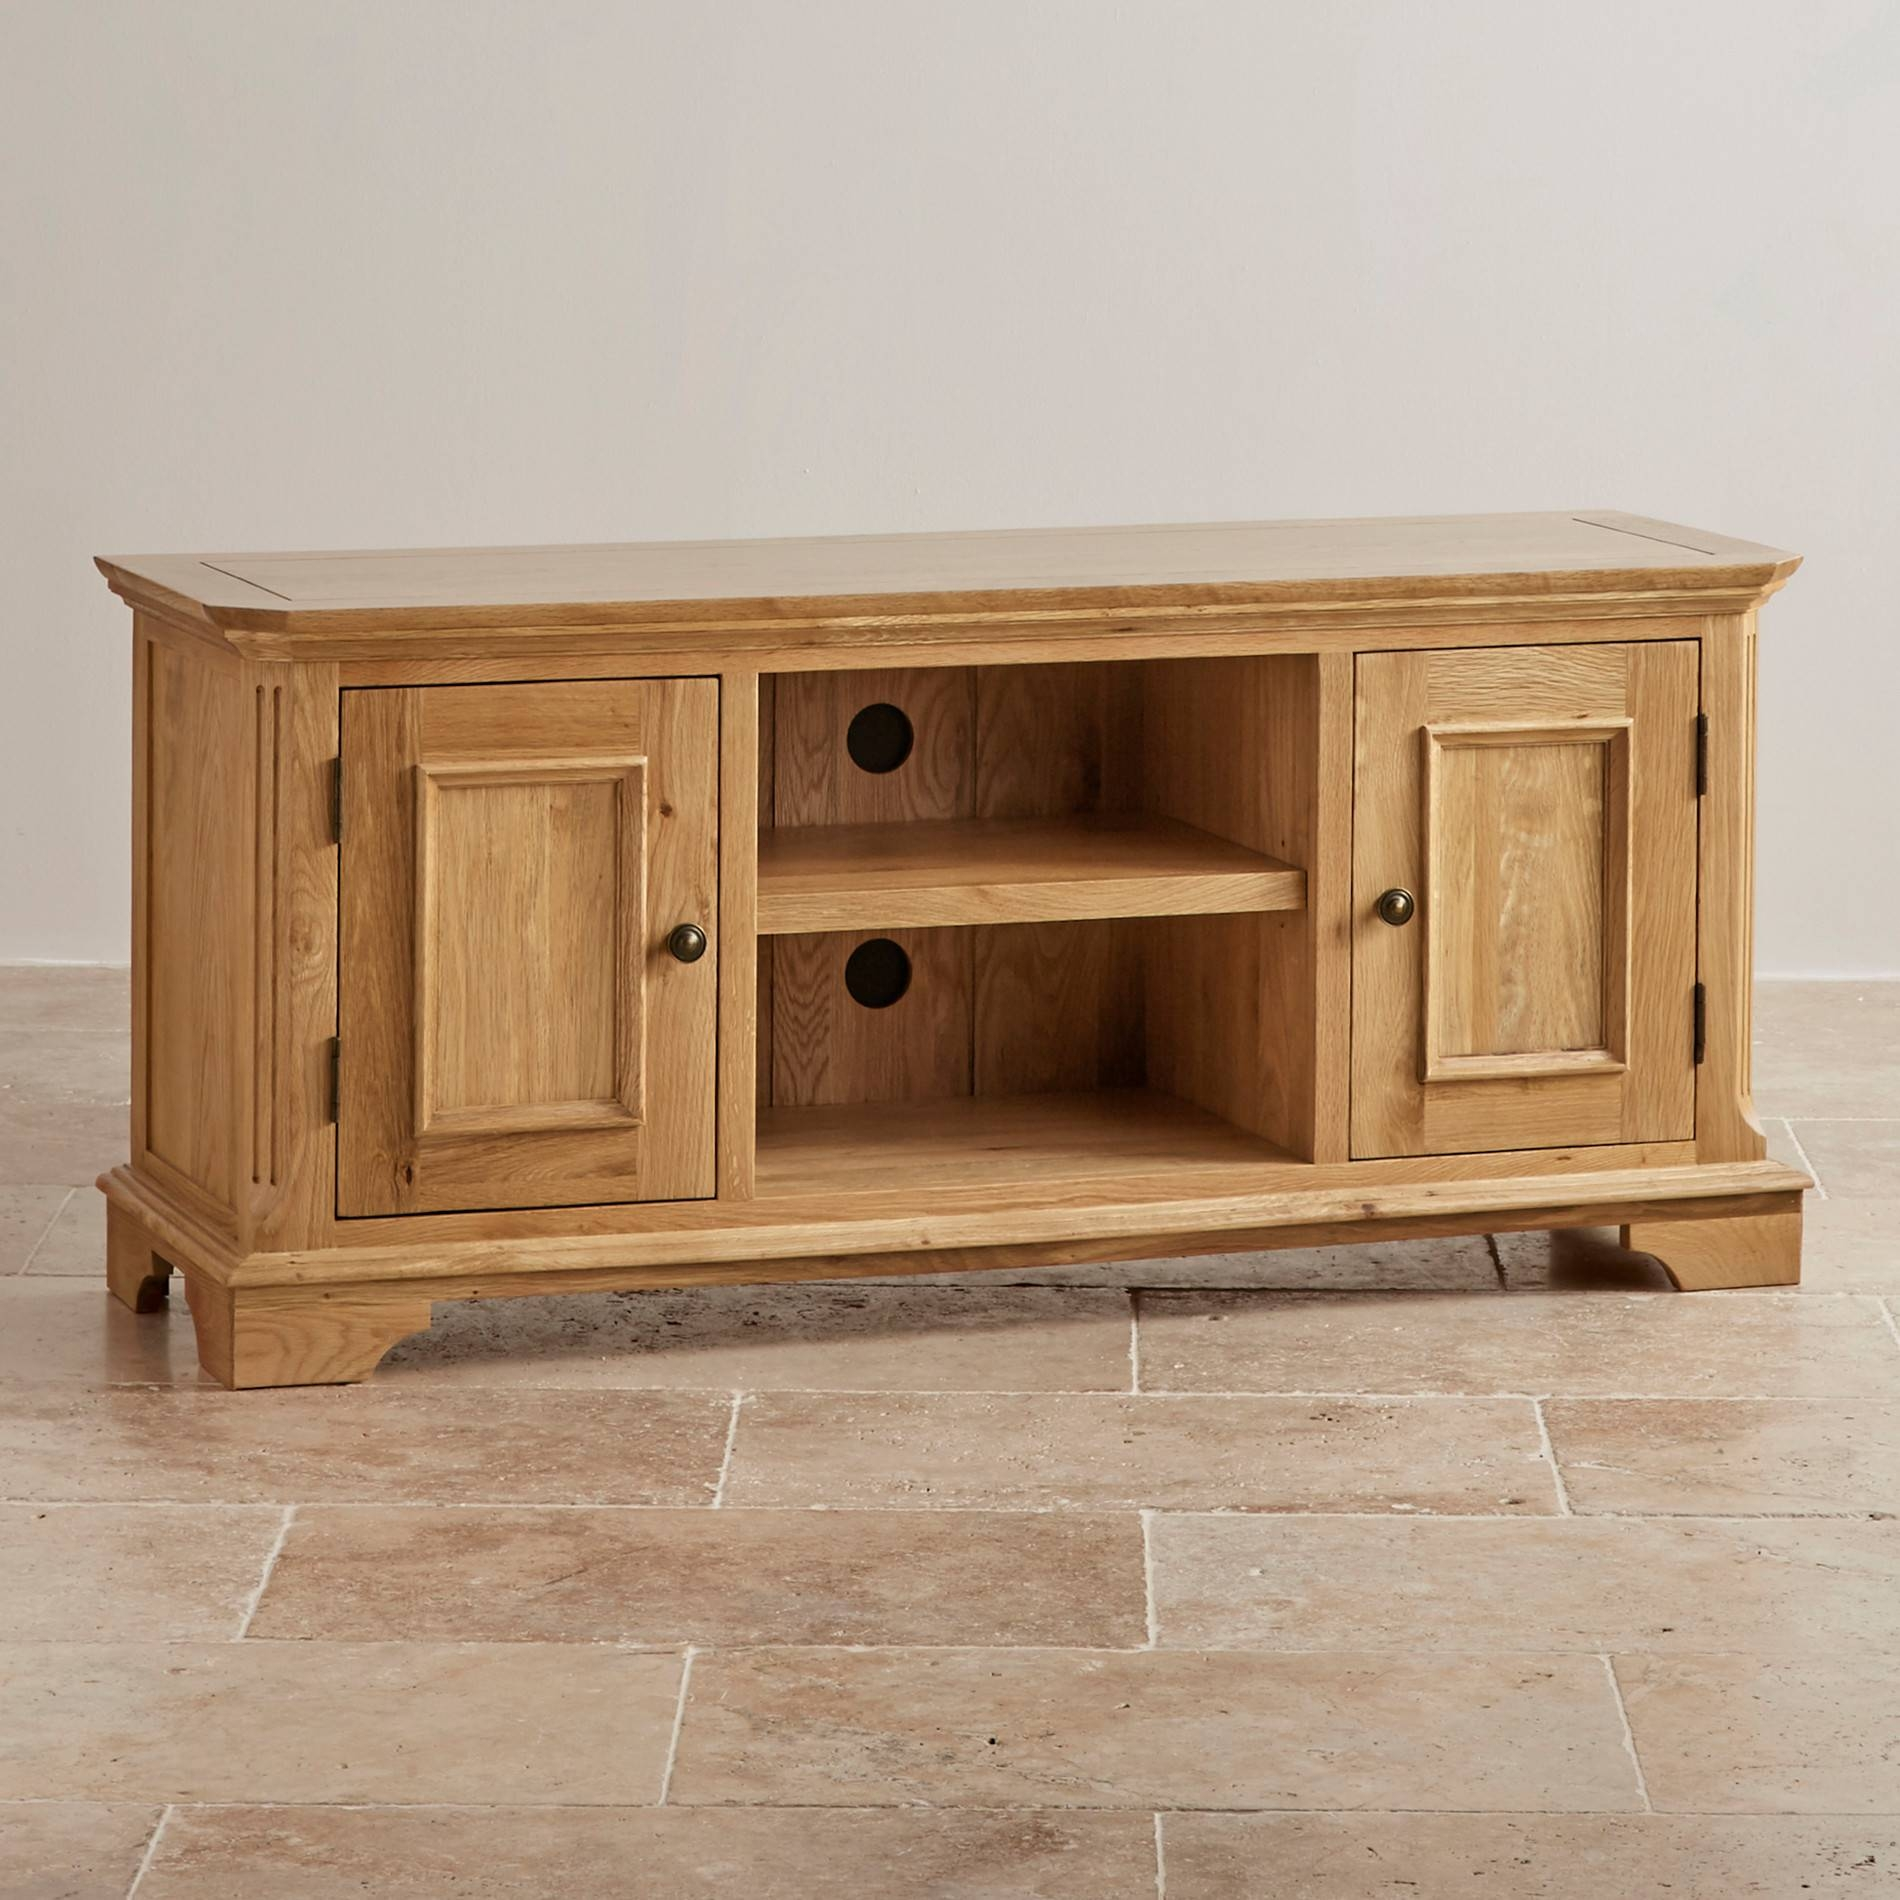 Edinburgh Tv Cabinet In Natural Solid Oak | Oak Furniture Land intended for Tv Cabinets (Image 4 of 15)